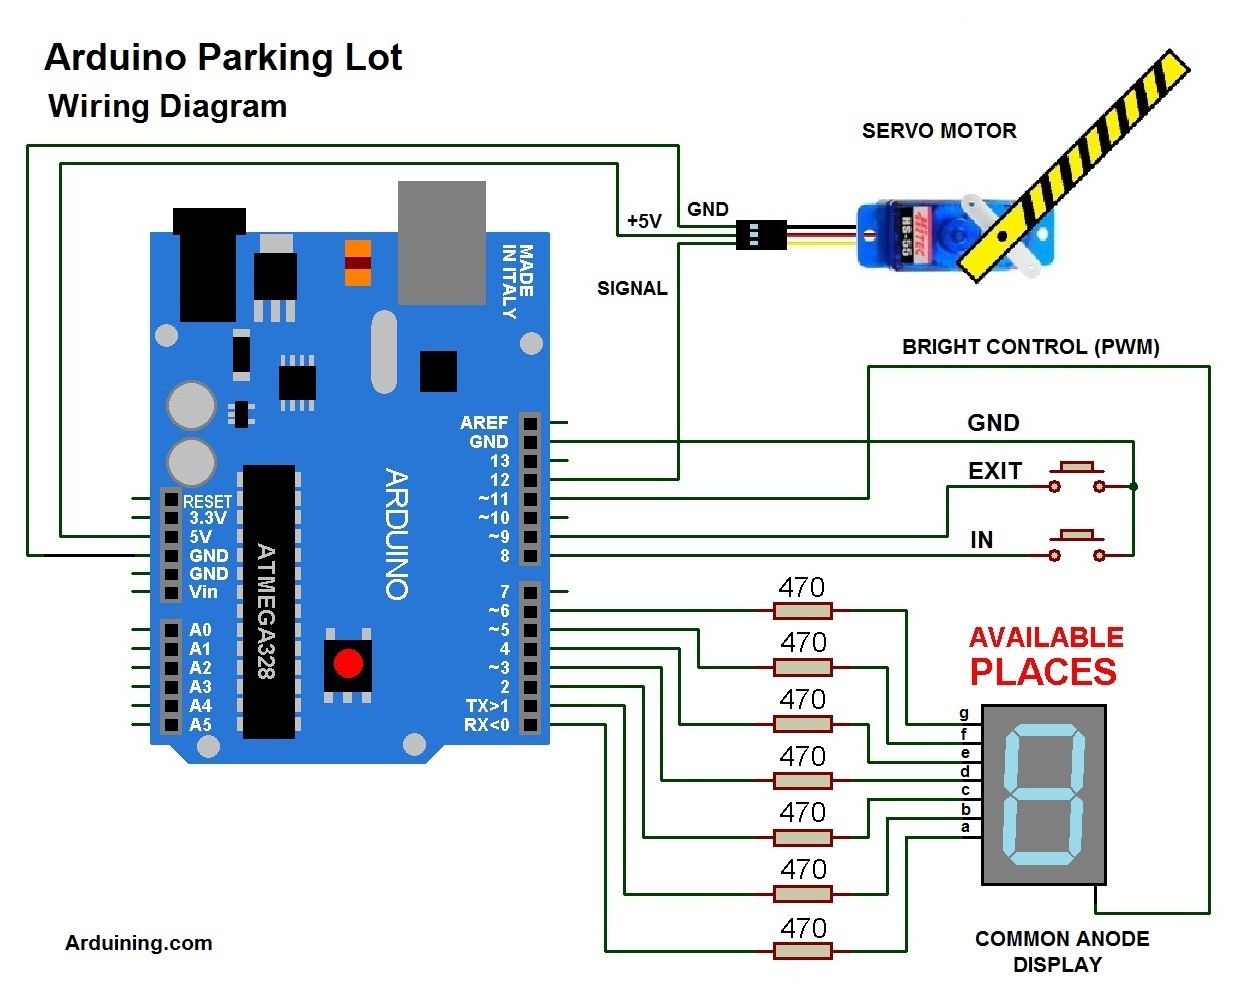 Arduino parking lot filled arduining wiring diagram here asfbconference2016 Image collections